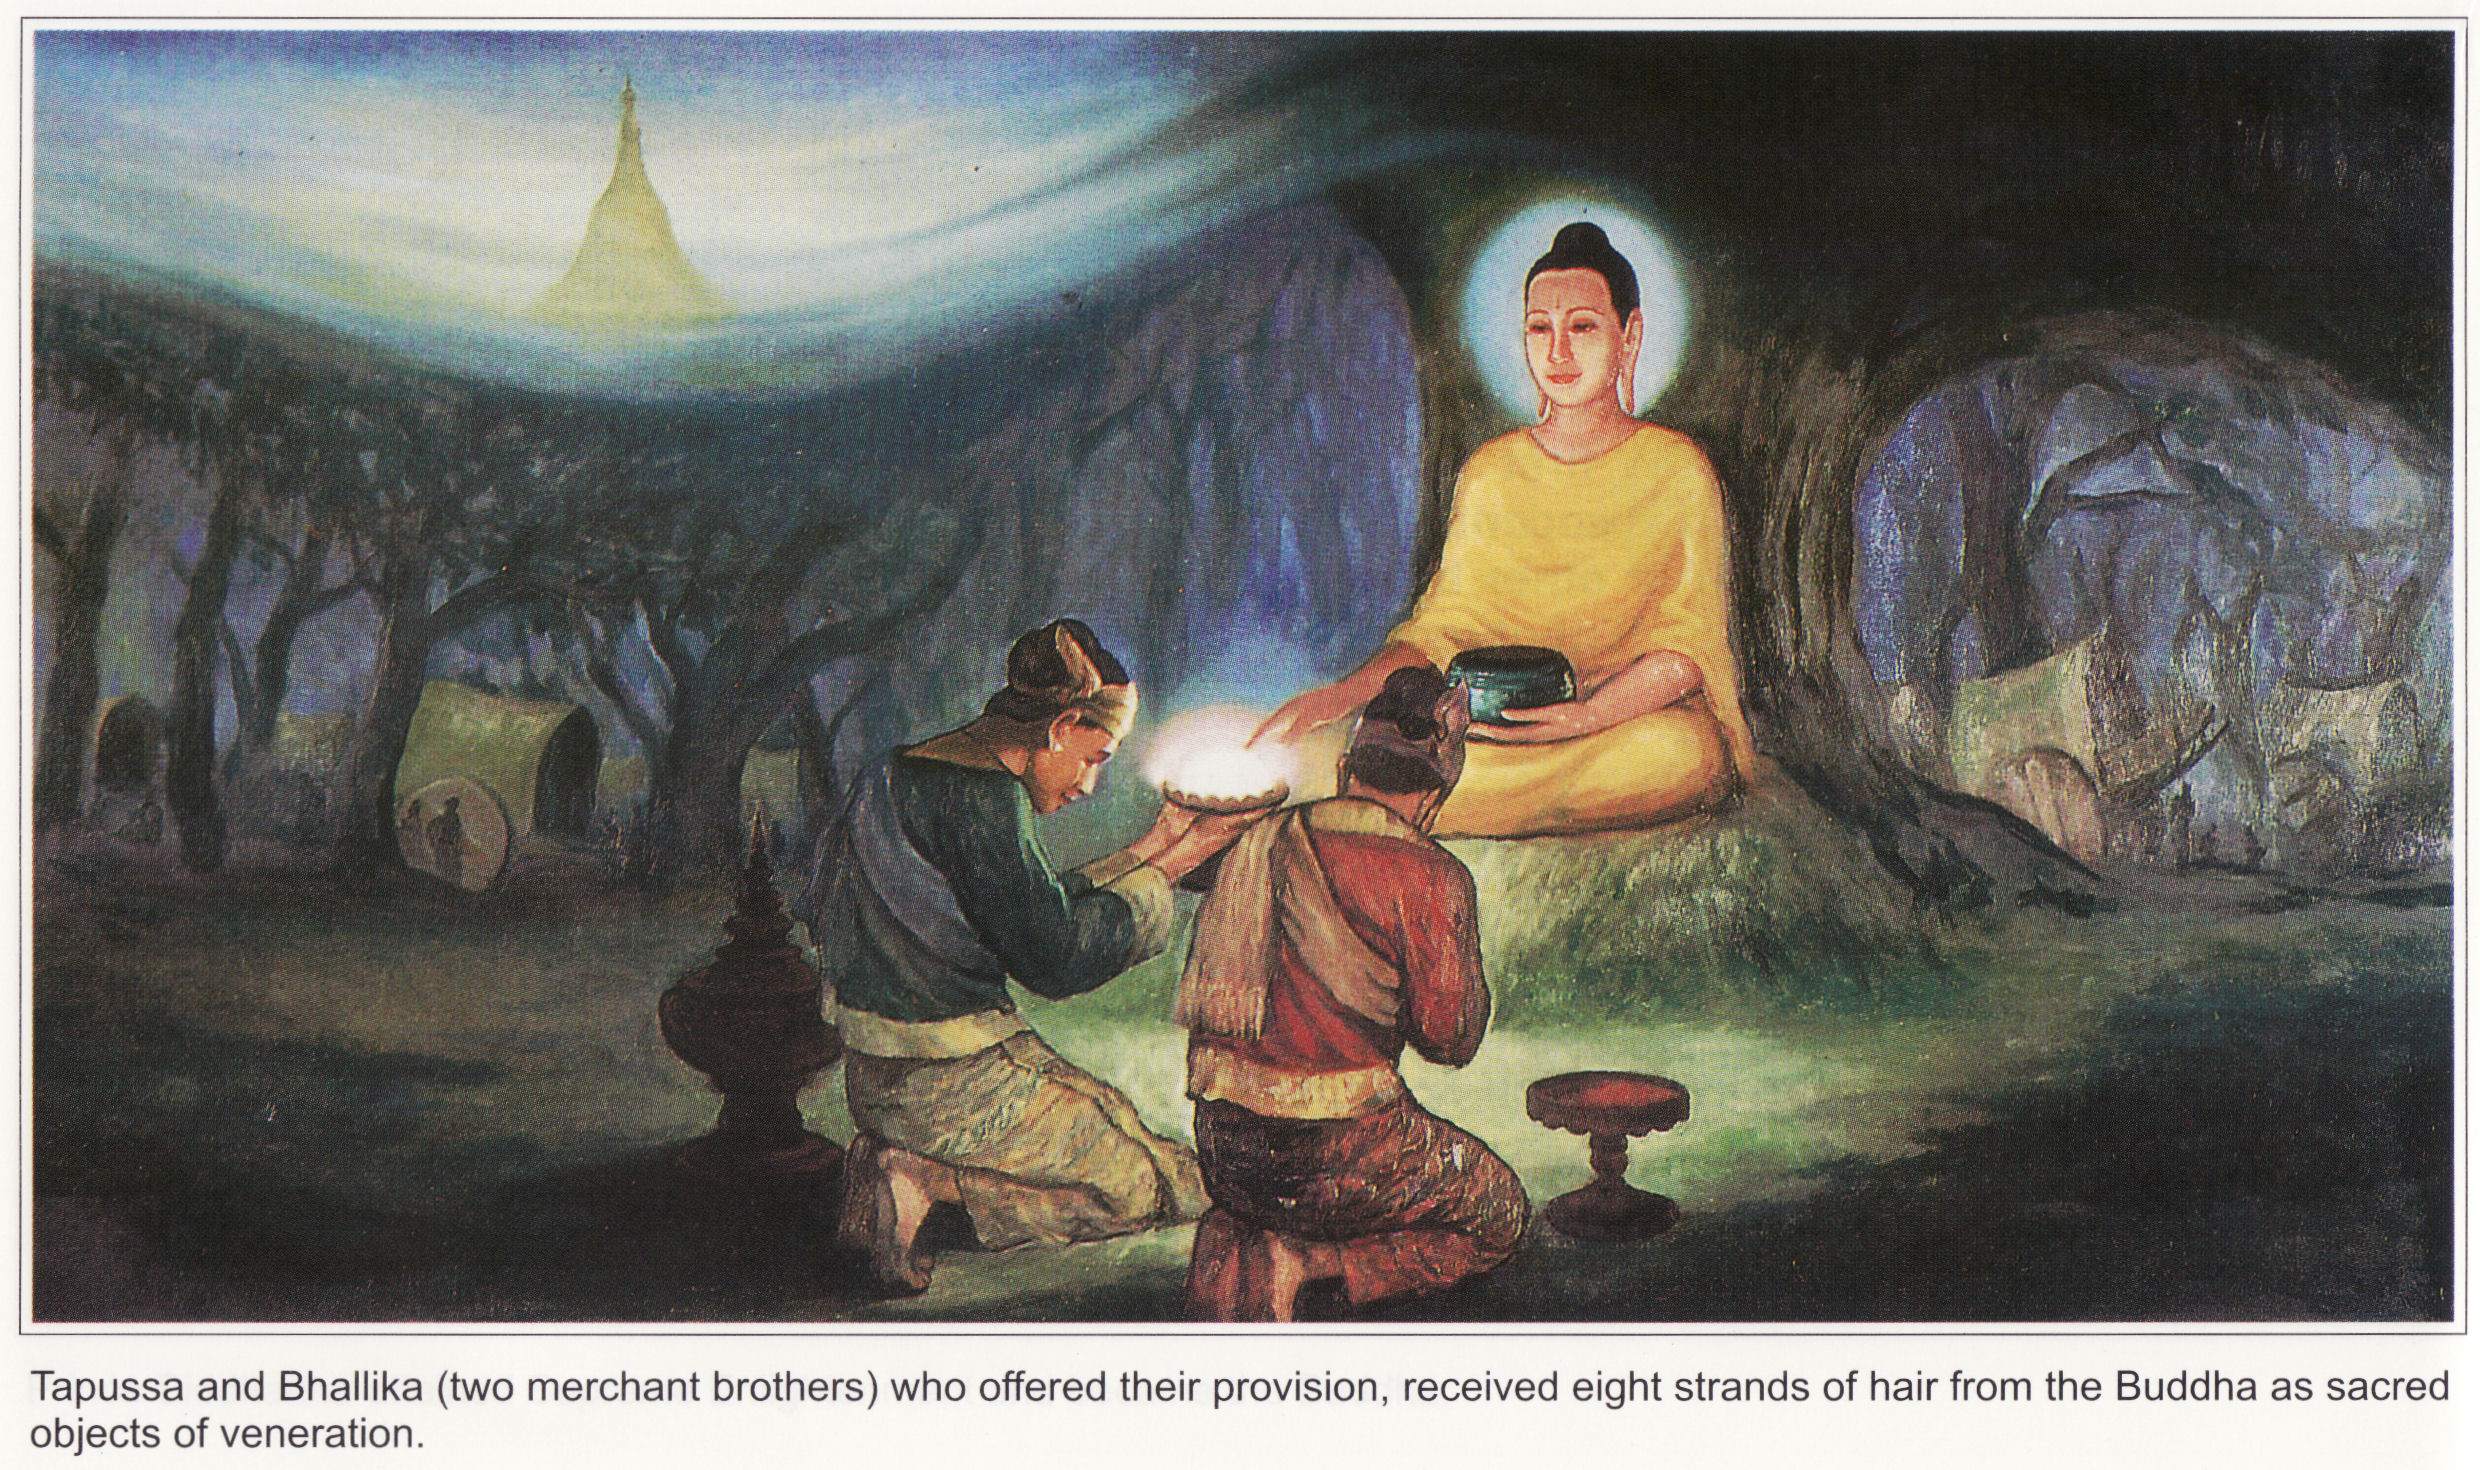 life of the buddha The buddha's story is very touching and reflects the endless quest of humanity for peace peace starts with one's self, to be able to reflect it on the outside world personnaly, it opened my eyes and heart at life.